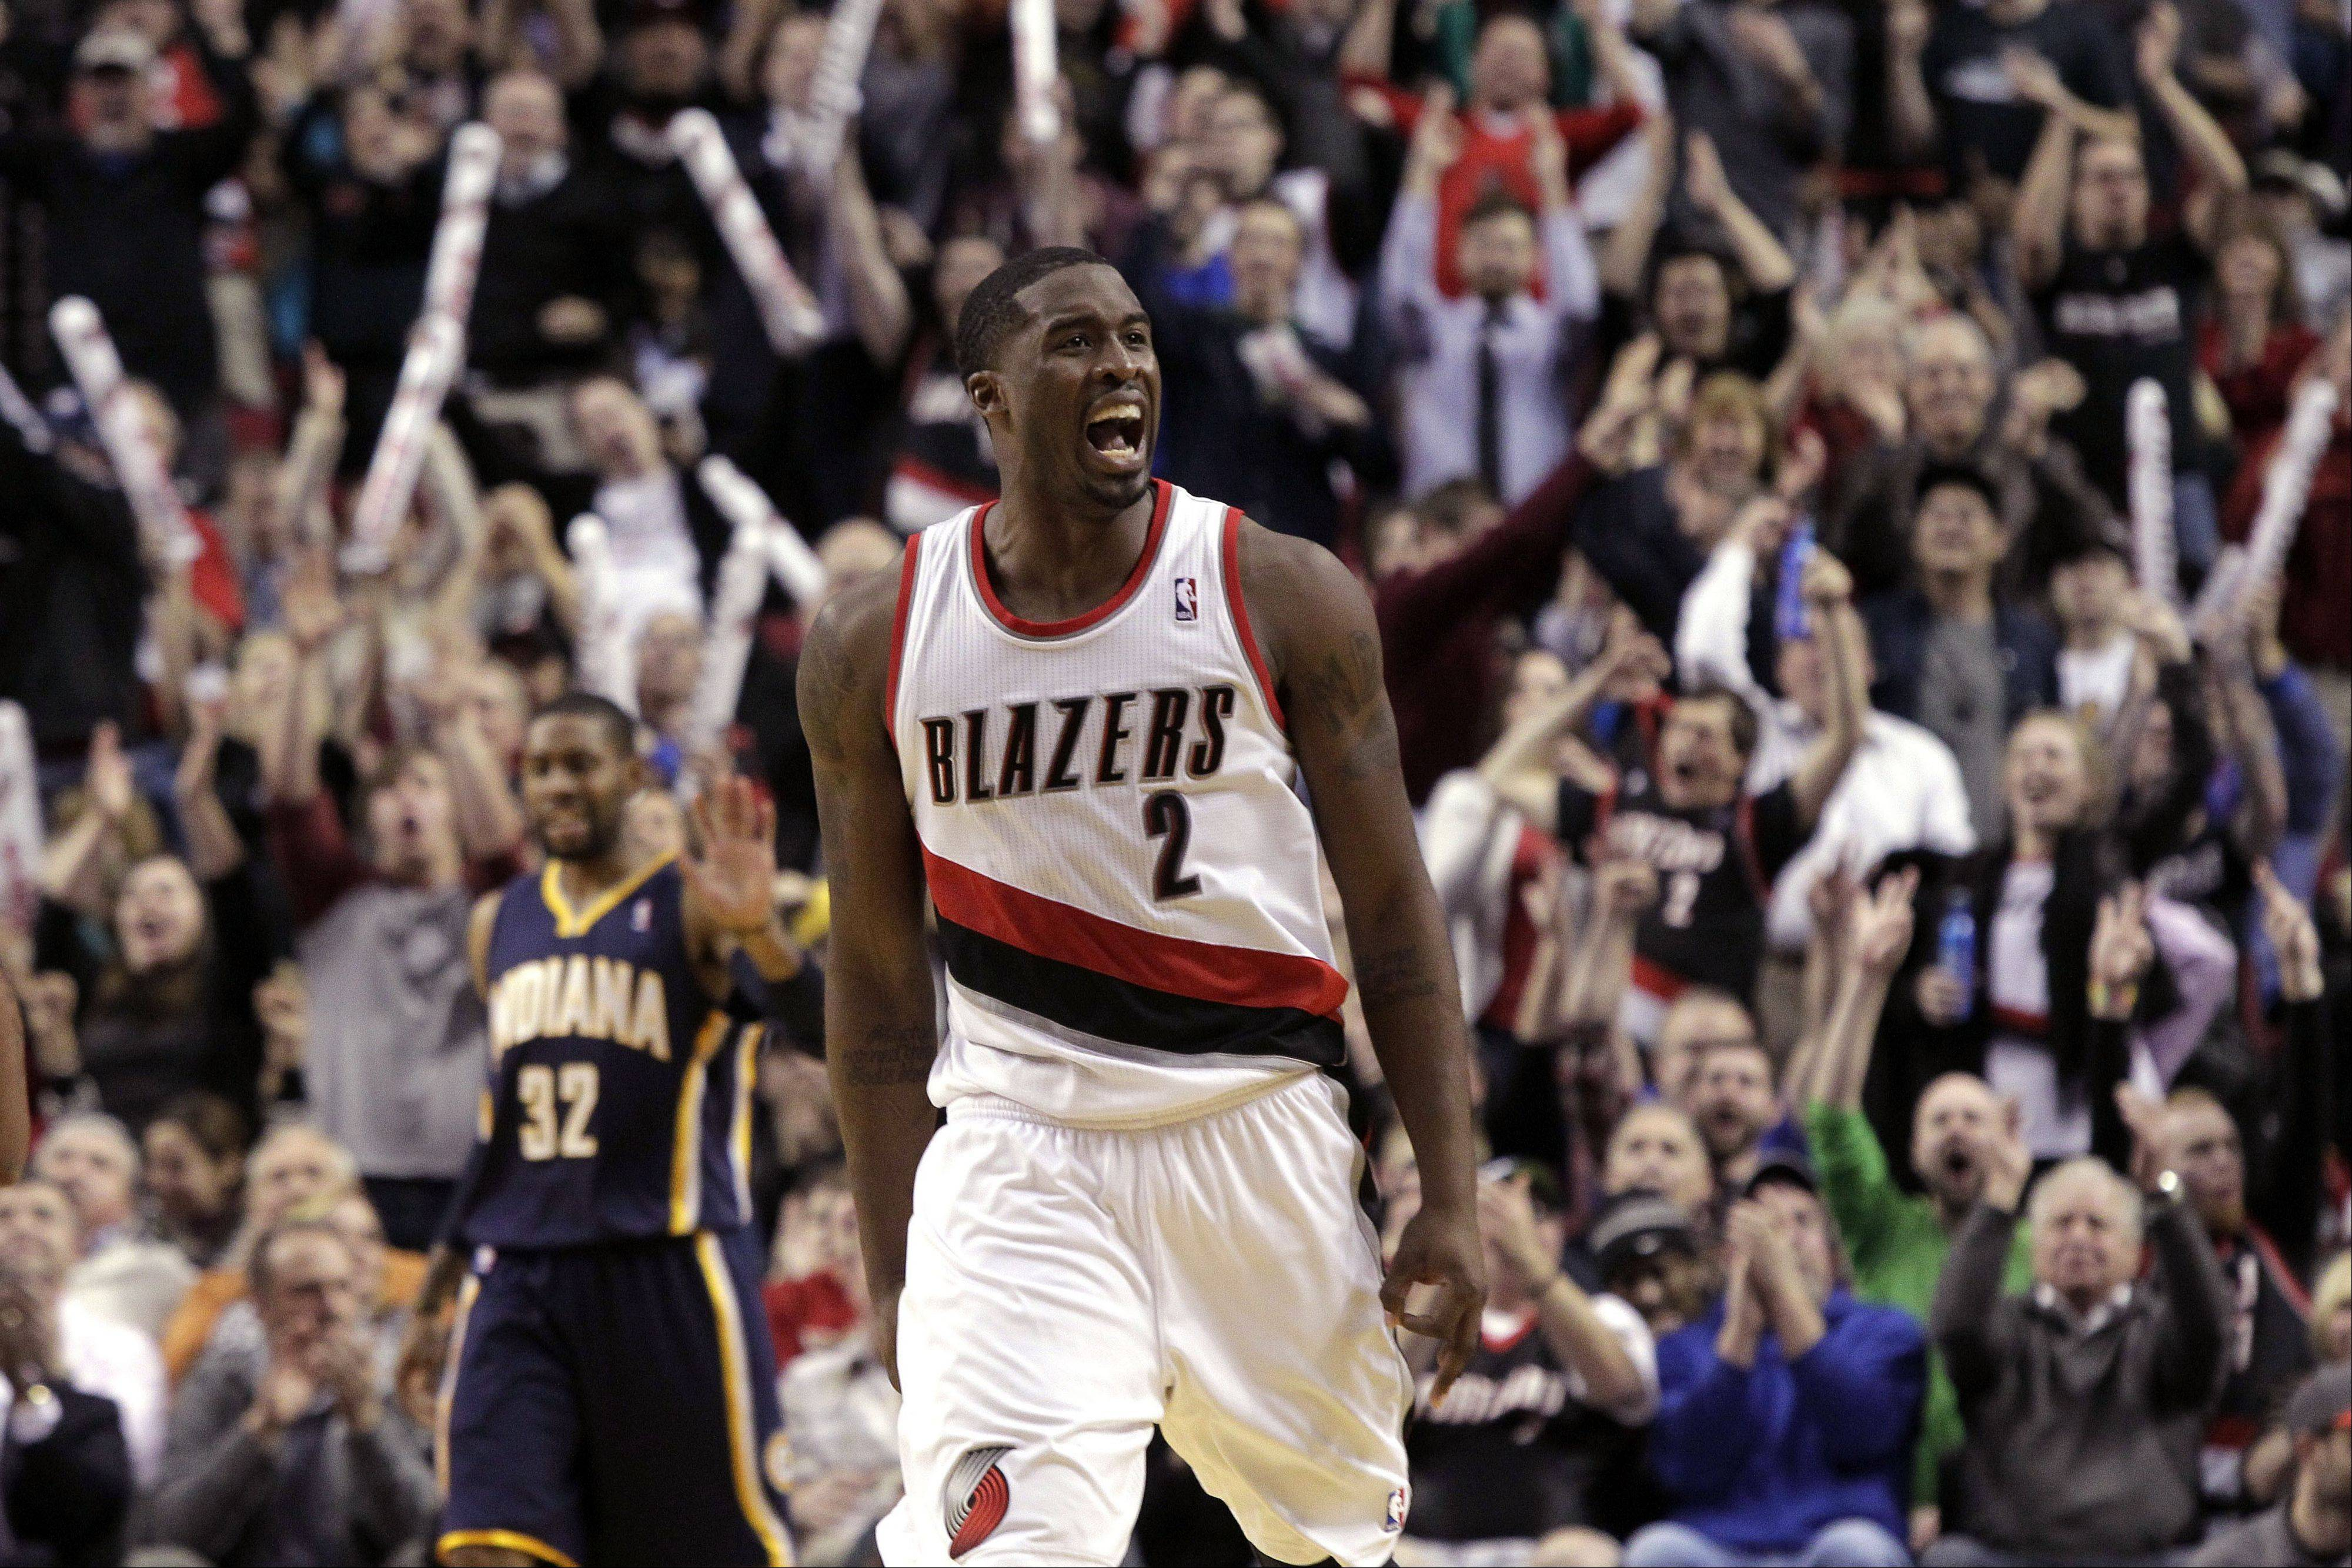 Portland Trail Blazers guard Wesley Matthews reacts after sinking a three-point shot during the second half of an NBA basketball game Monday against the Indiana Pacers in Portland, Ore. Matthews scored 15 points as the Trail Blazers won 106-102.